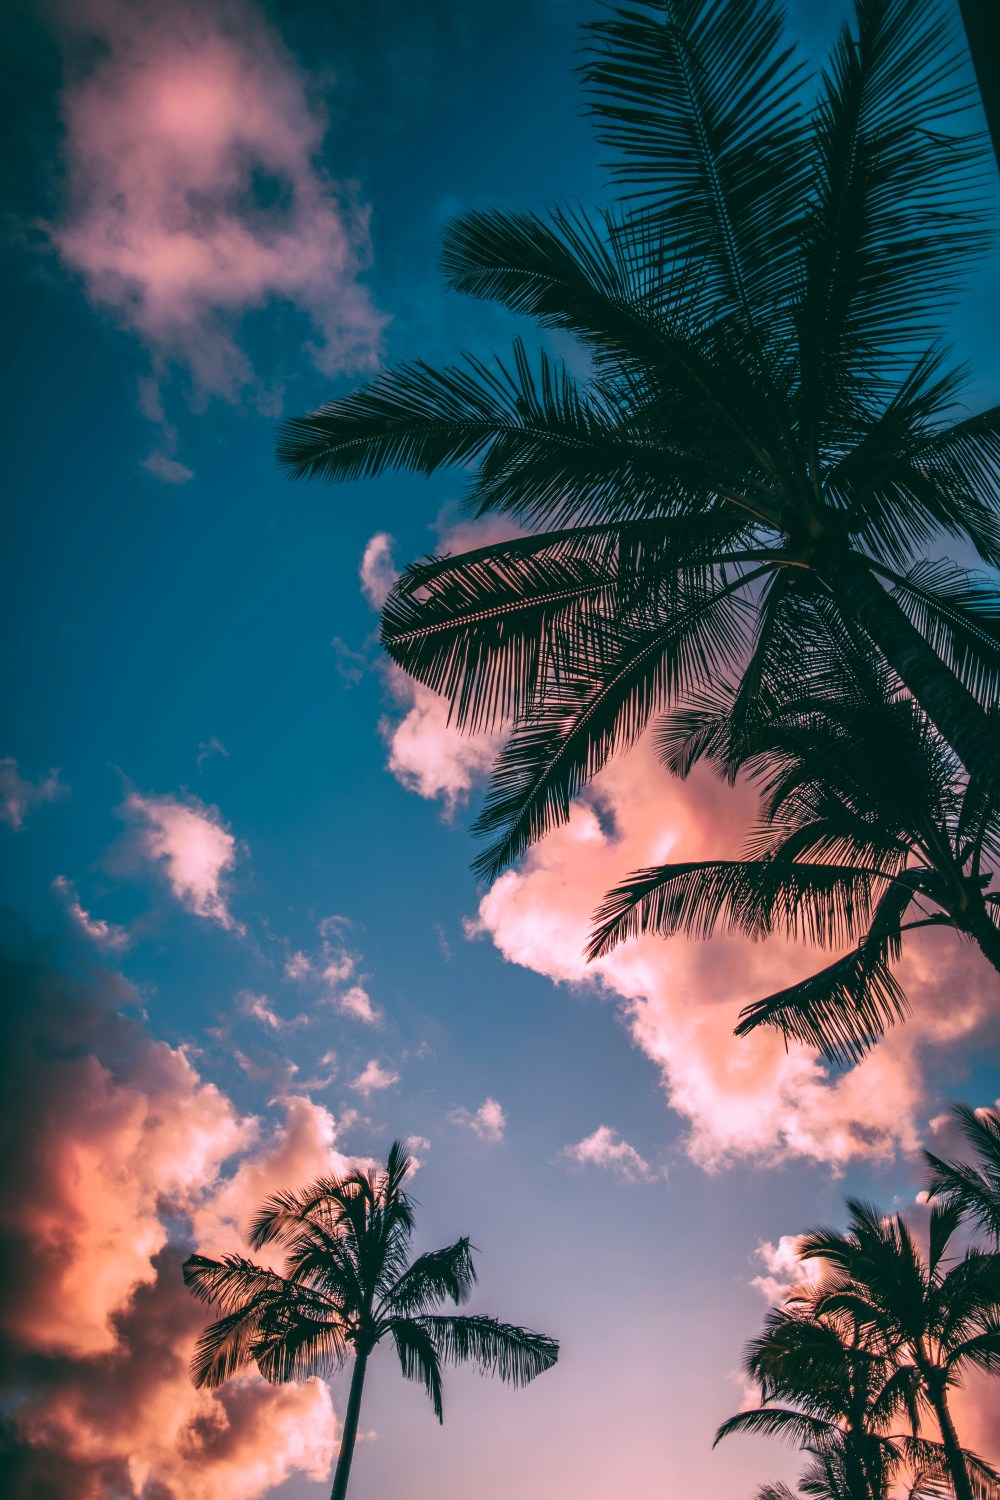 Summer Images Hd : summer, images, Tropical, Pictures, Download, Images, Stock, Photos, Unsplash